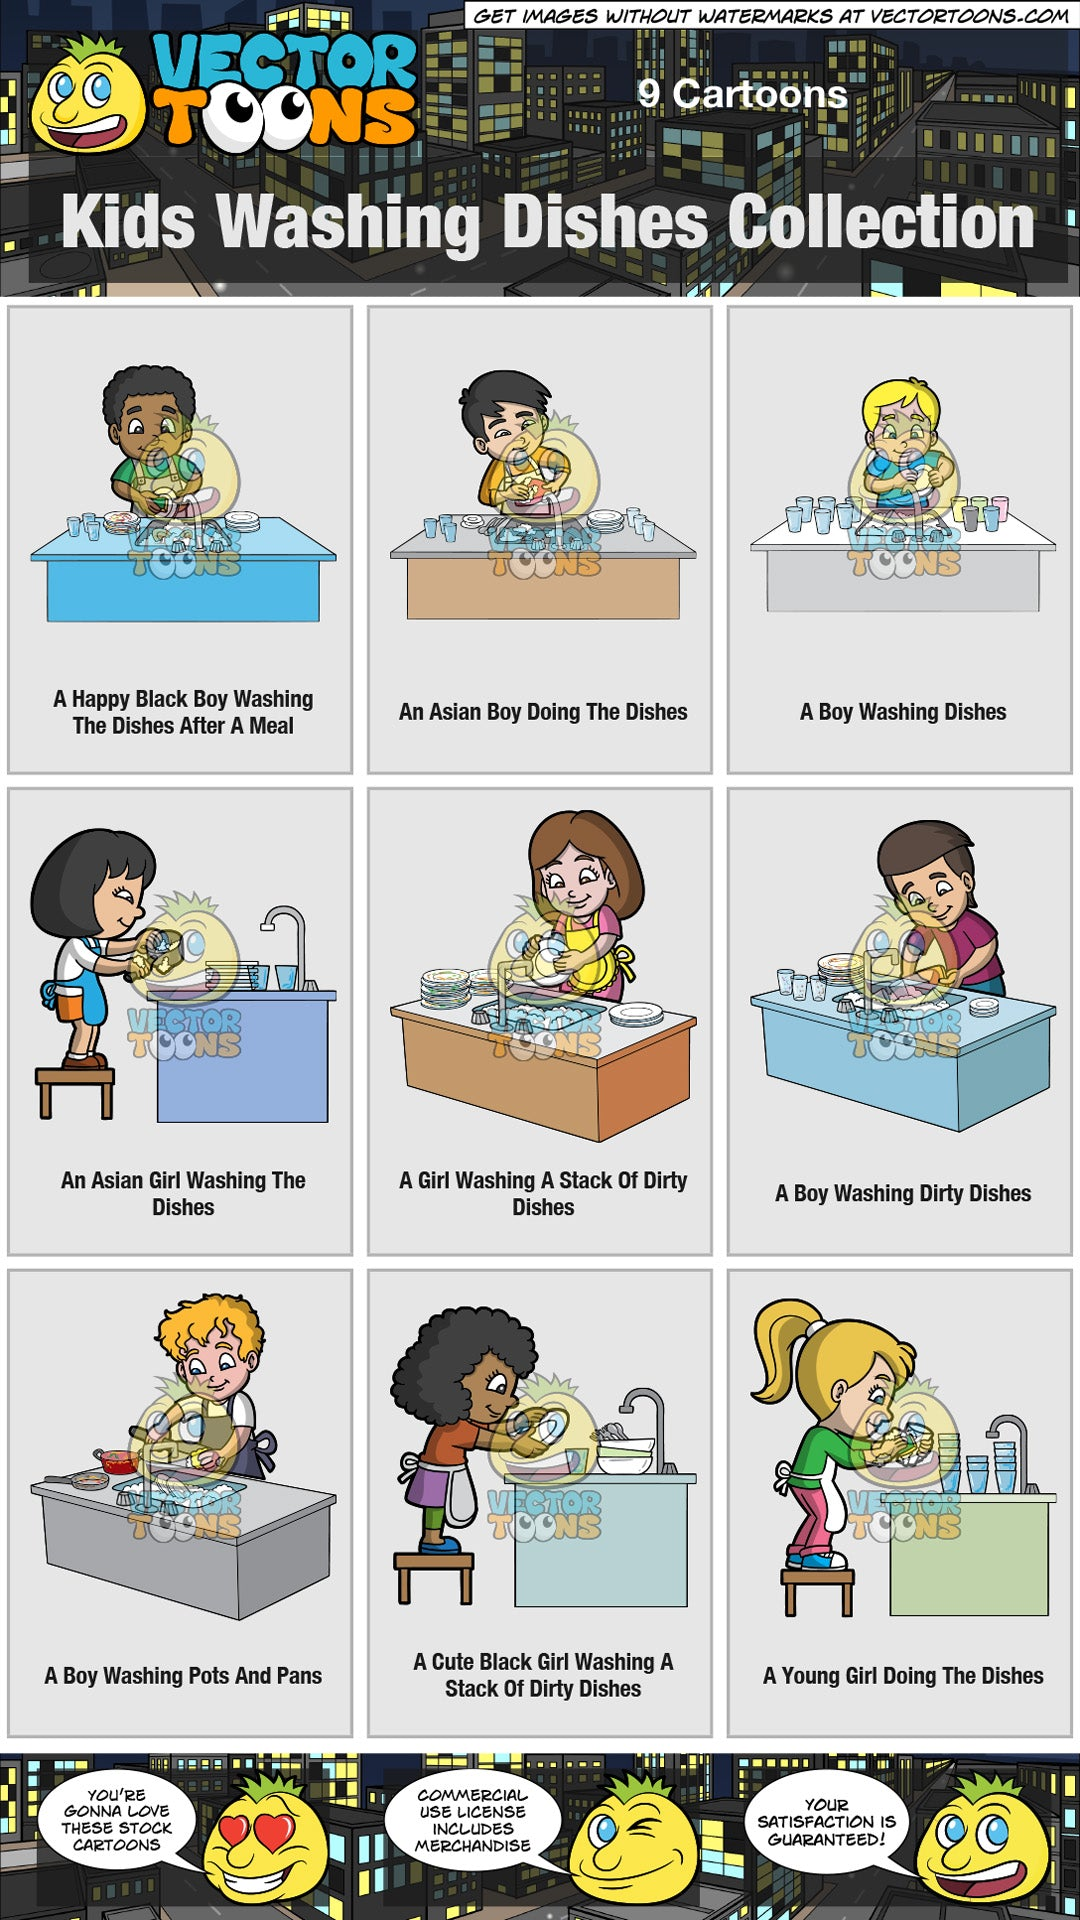 Kids Washing Dishes Collection